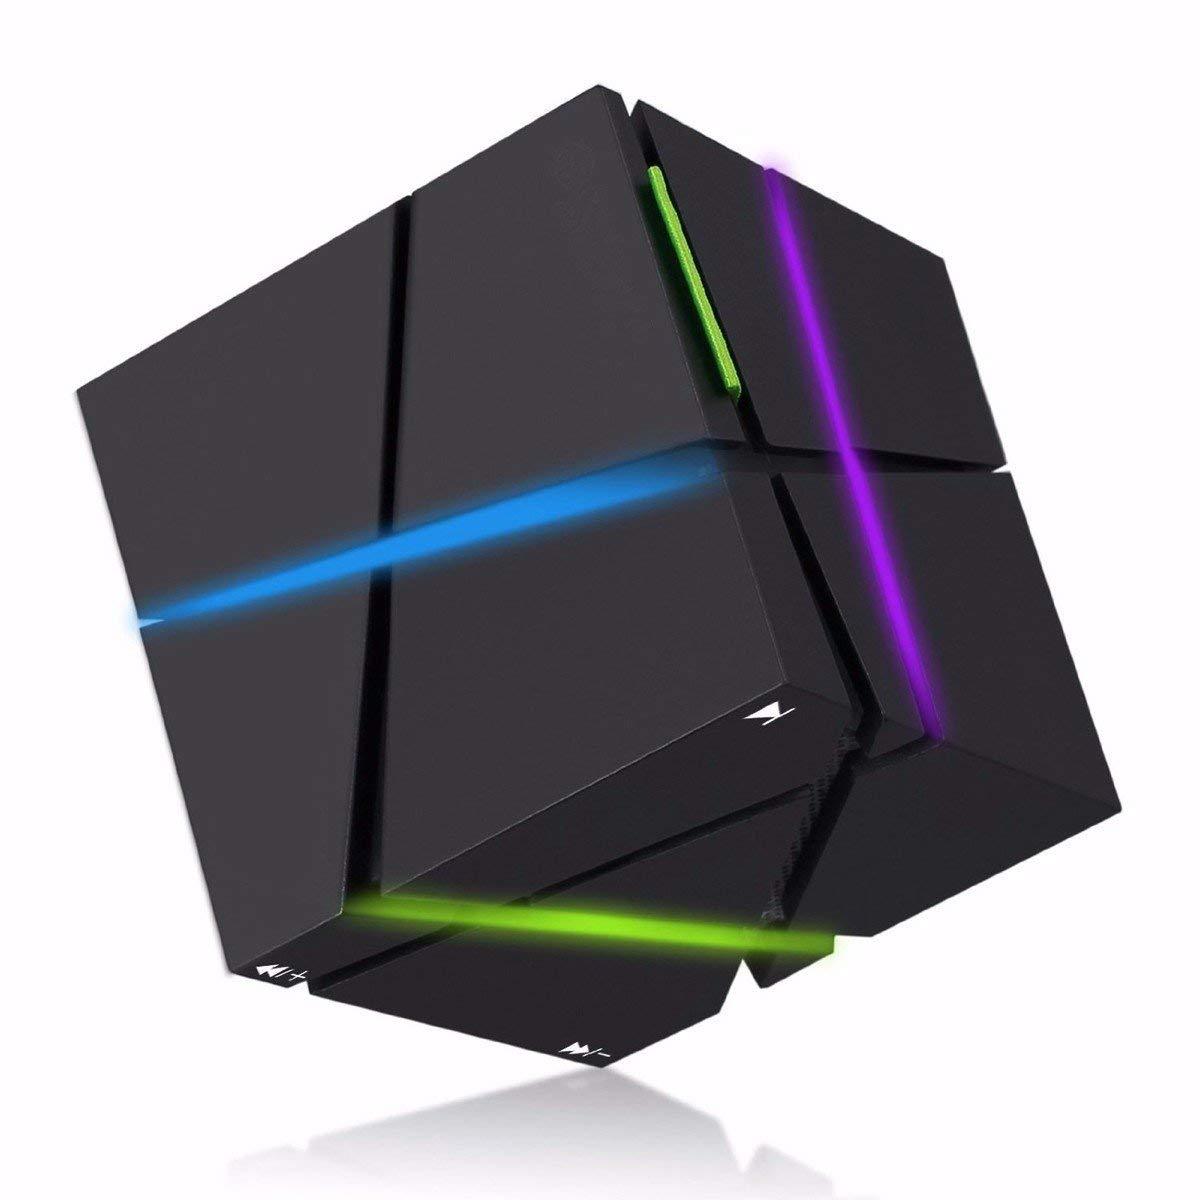 ELEGIANT Mini Altavoz Portátil Inalámbrico Bluetooth Cube LED Colorido Manos Libres con Micrófono Incorporado